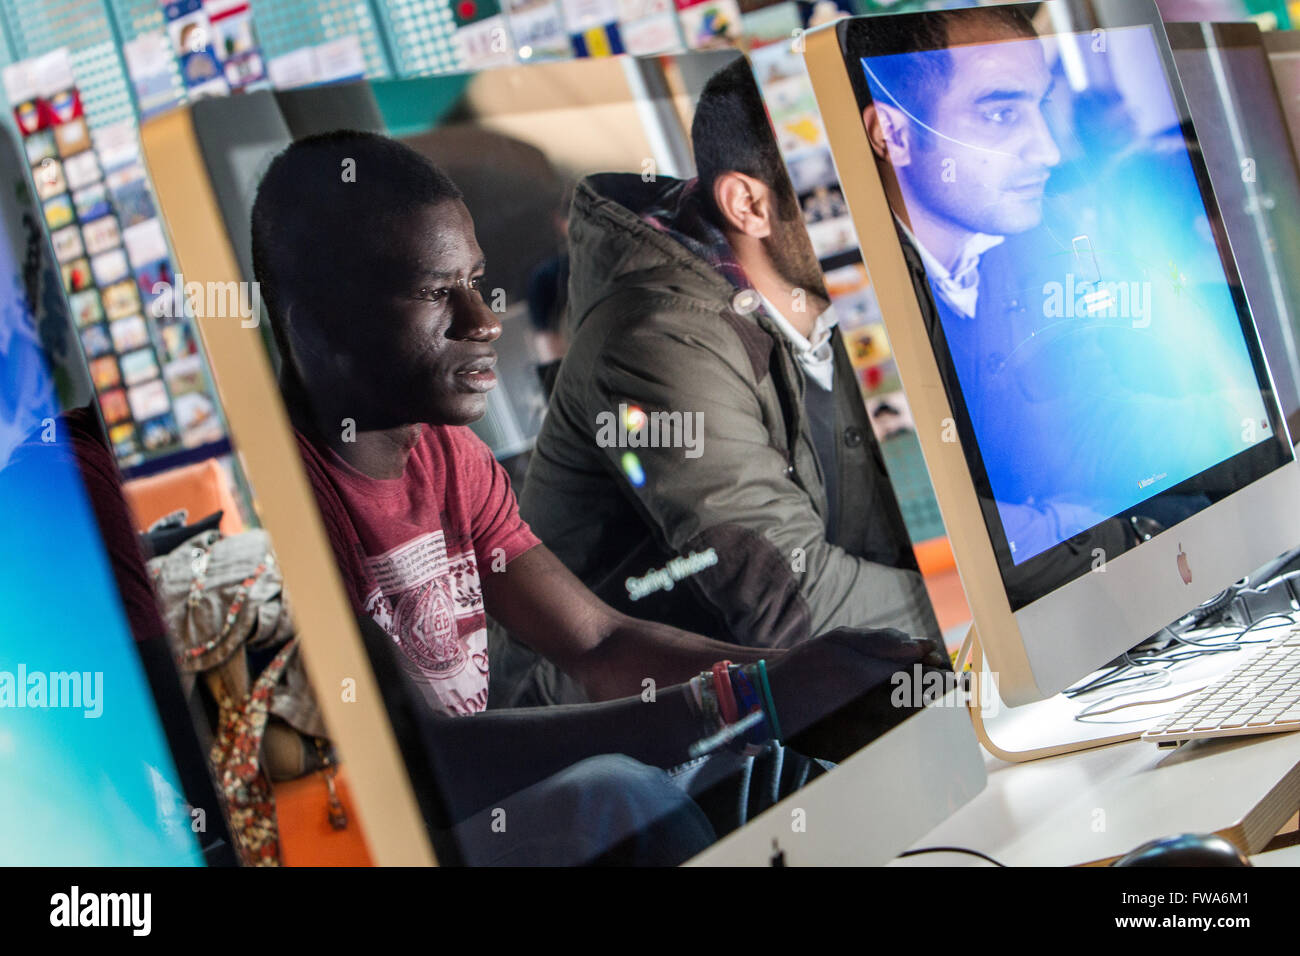 students reflected on computer screens - Stock Image